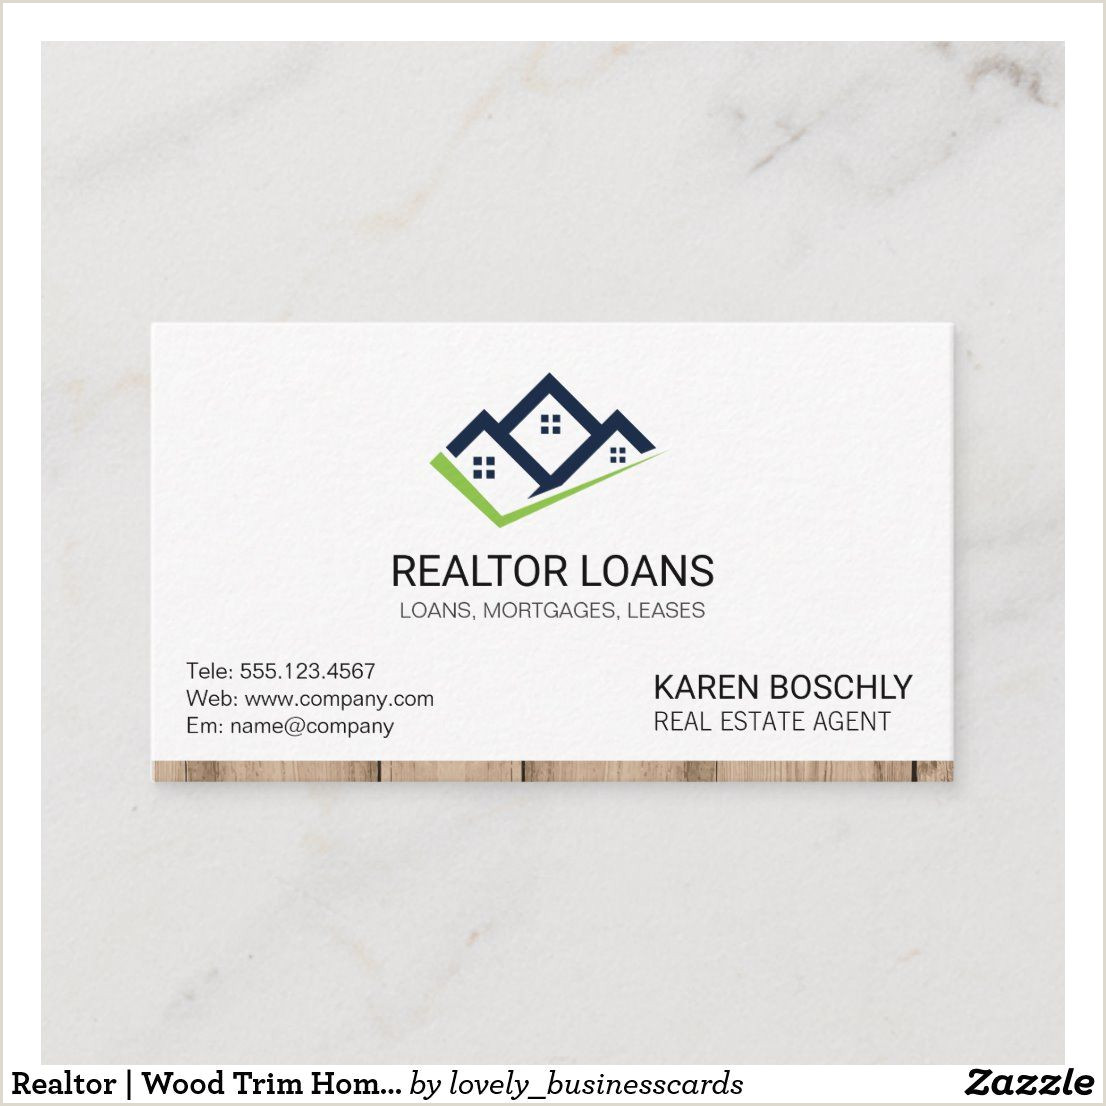 Business Cards At Home Realtor Wood Trim Home Icon 2 Business Card